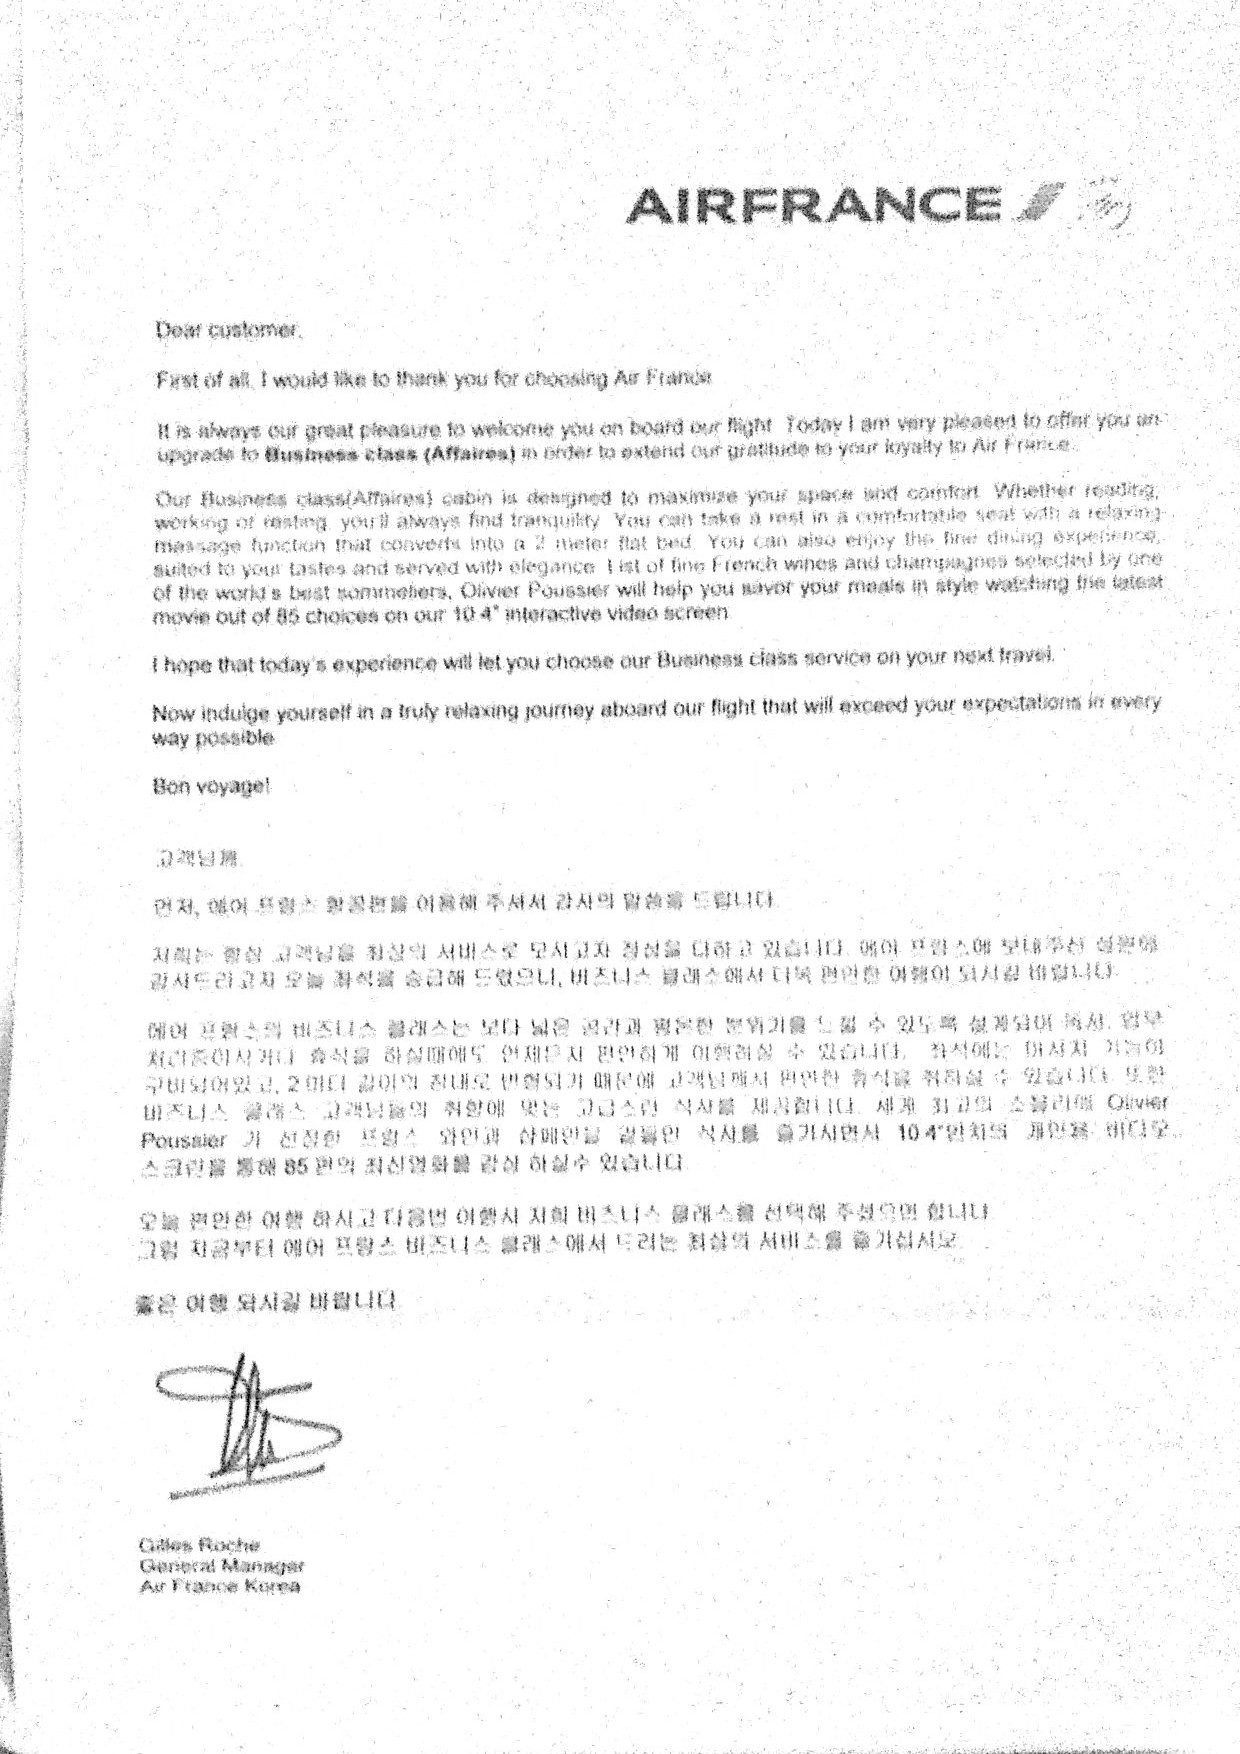 air France letter, The Myndset Brand Strategy and Thought Leadership